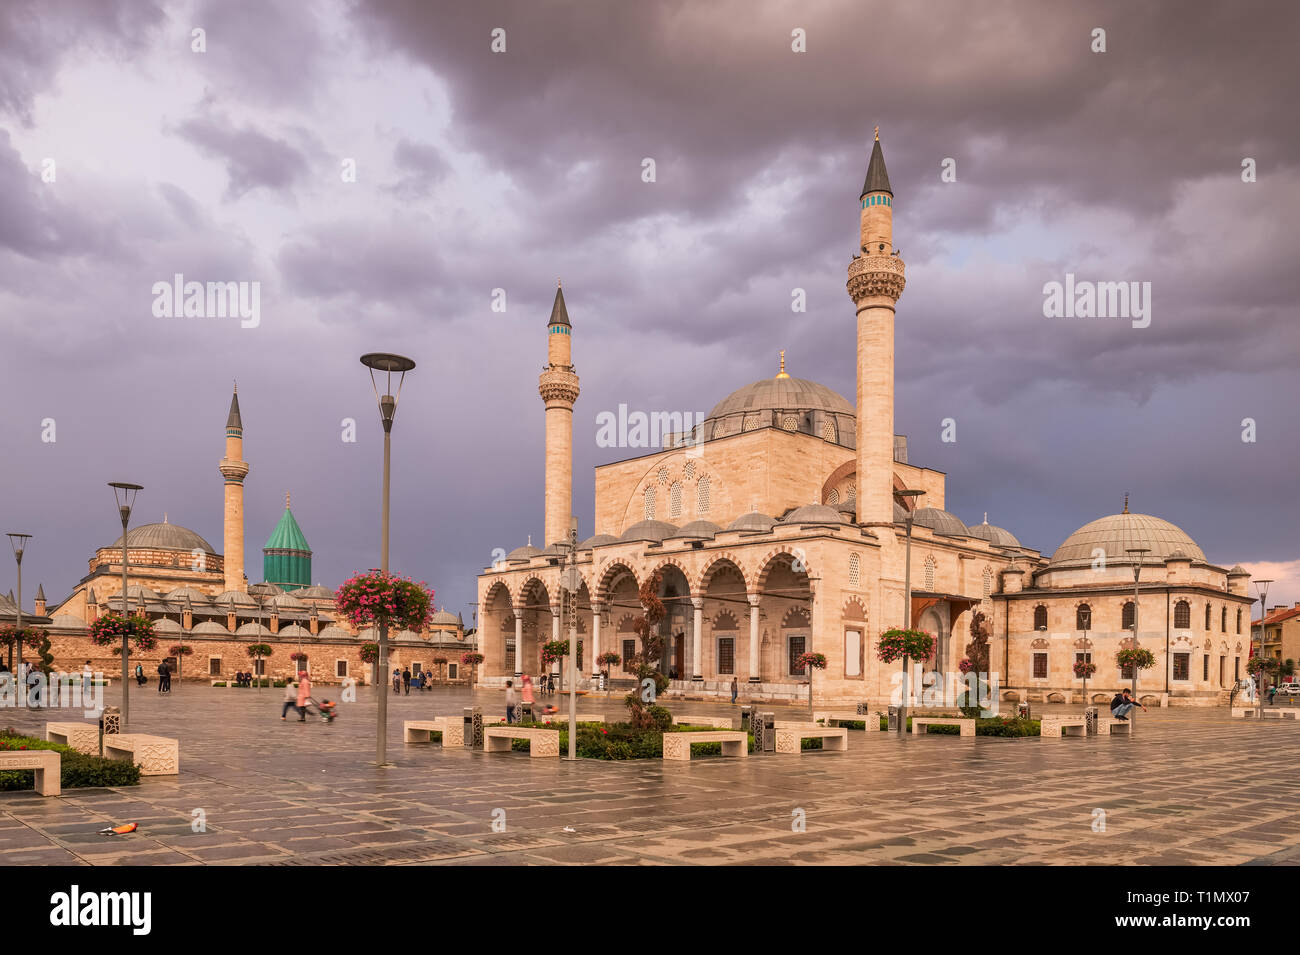 The central square of the old town of Konya with the Mevlana Museum on the background and Selimiye Mosque, Turkey - Stock Image